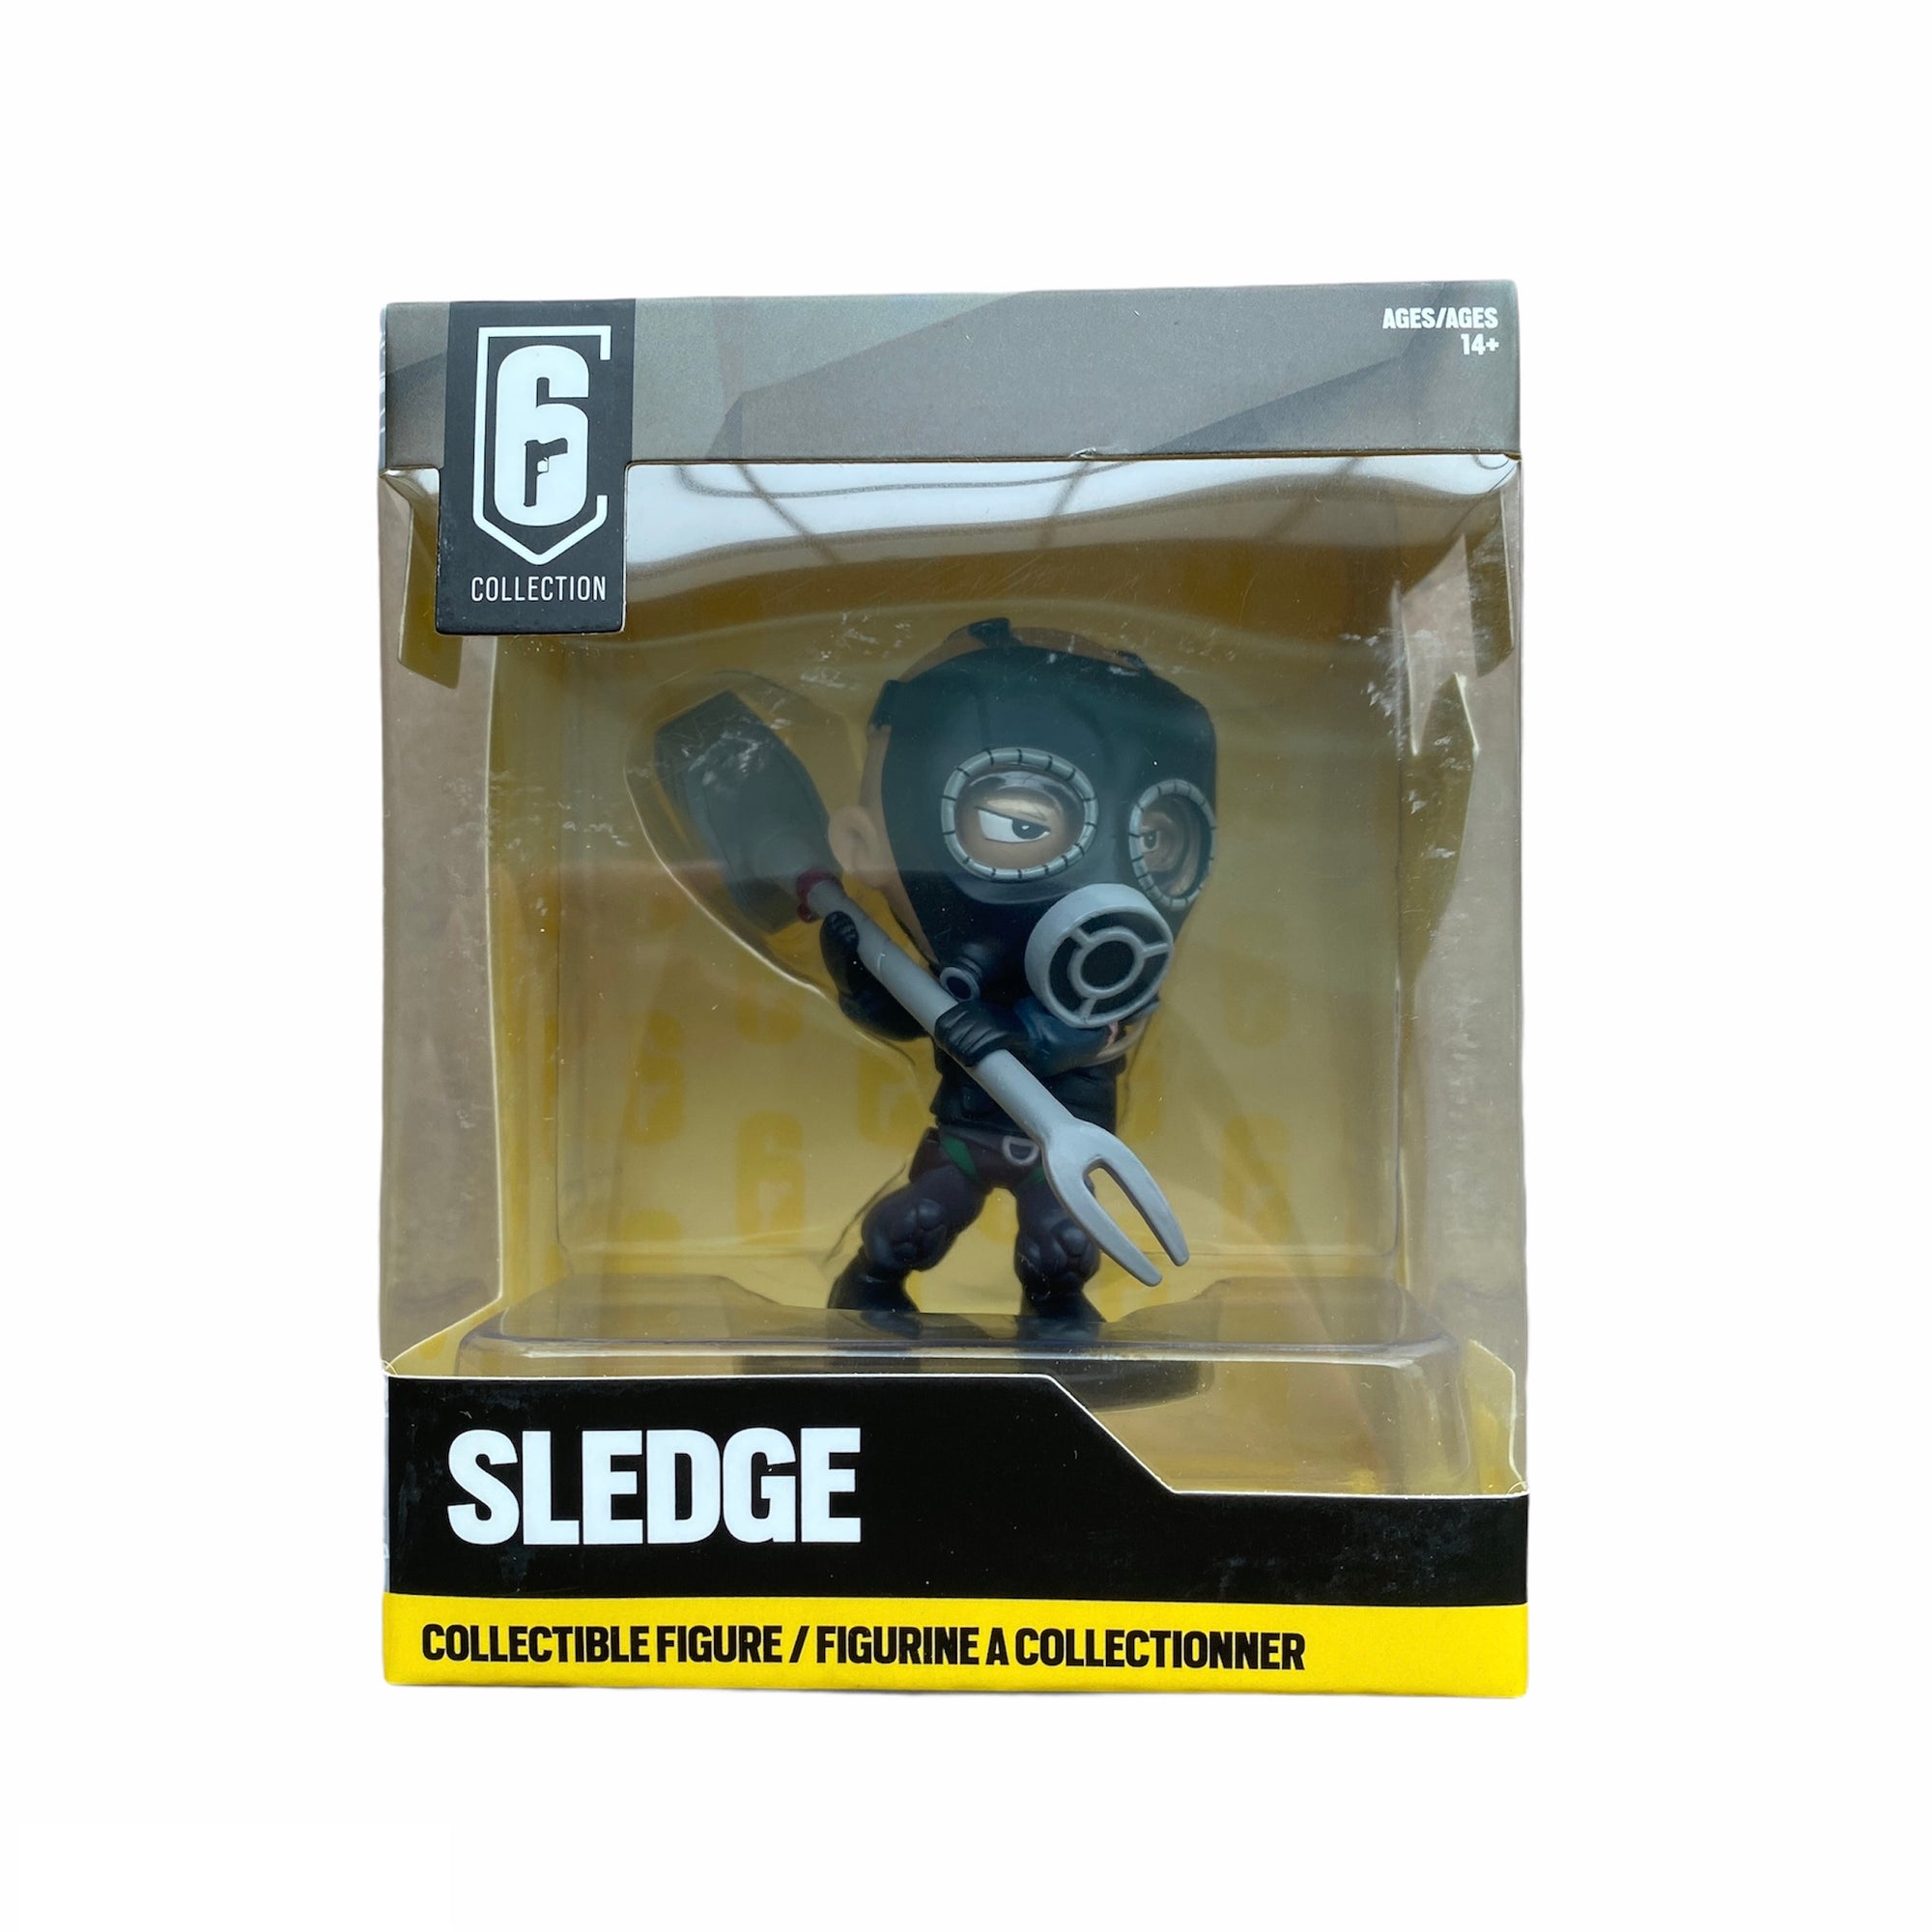 Rainbow Six Sledge Chibi Series 1 Collection